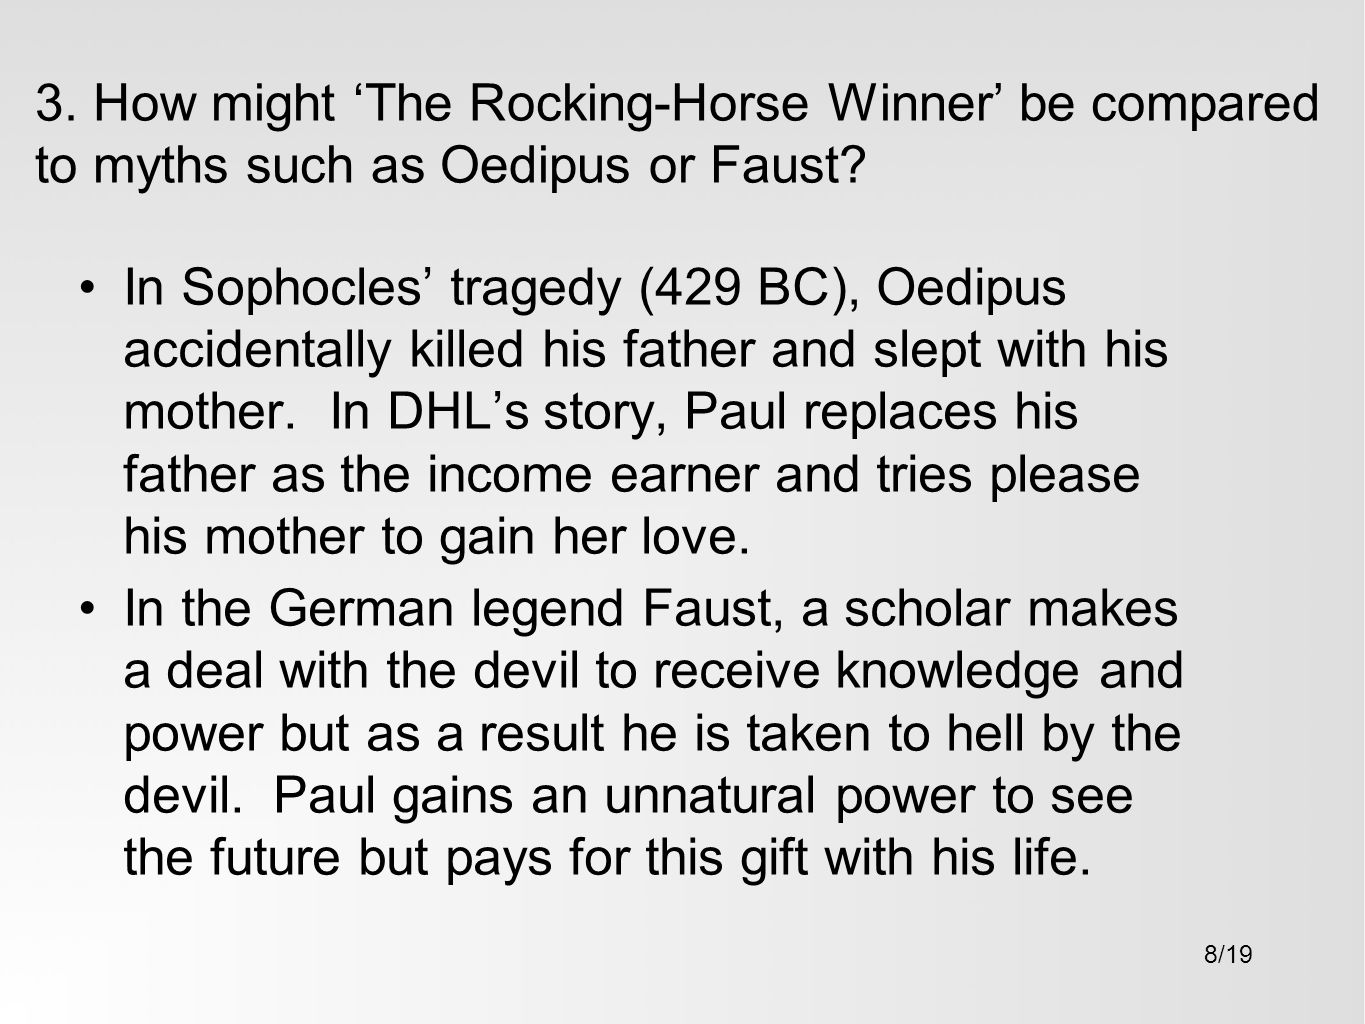 the developments of the rocking horse story english literature essay Engl 102 fiction essay liberty university online micheal mcintosh fiction essay the first of the two stories i chose to compare and contrast is titled the lottery by shirley jackson and the second story is titled the rocking-horse winner by dh lawrence.